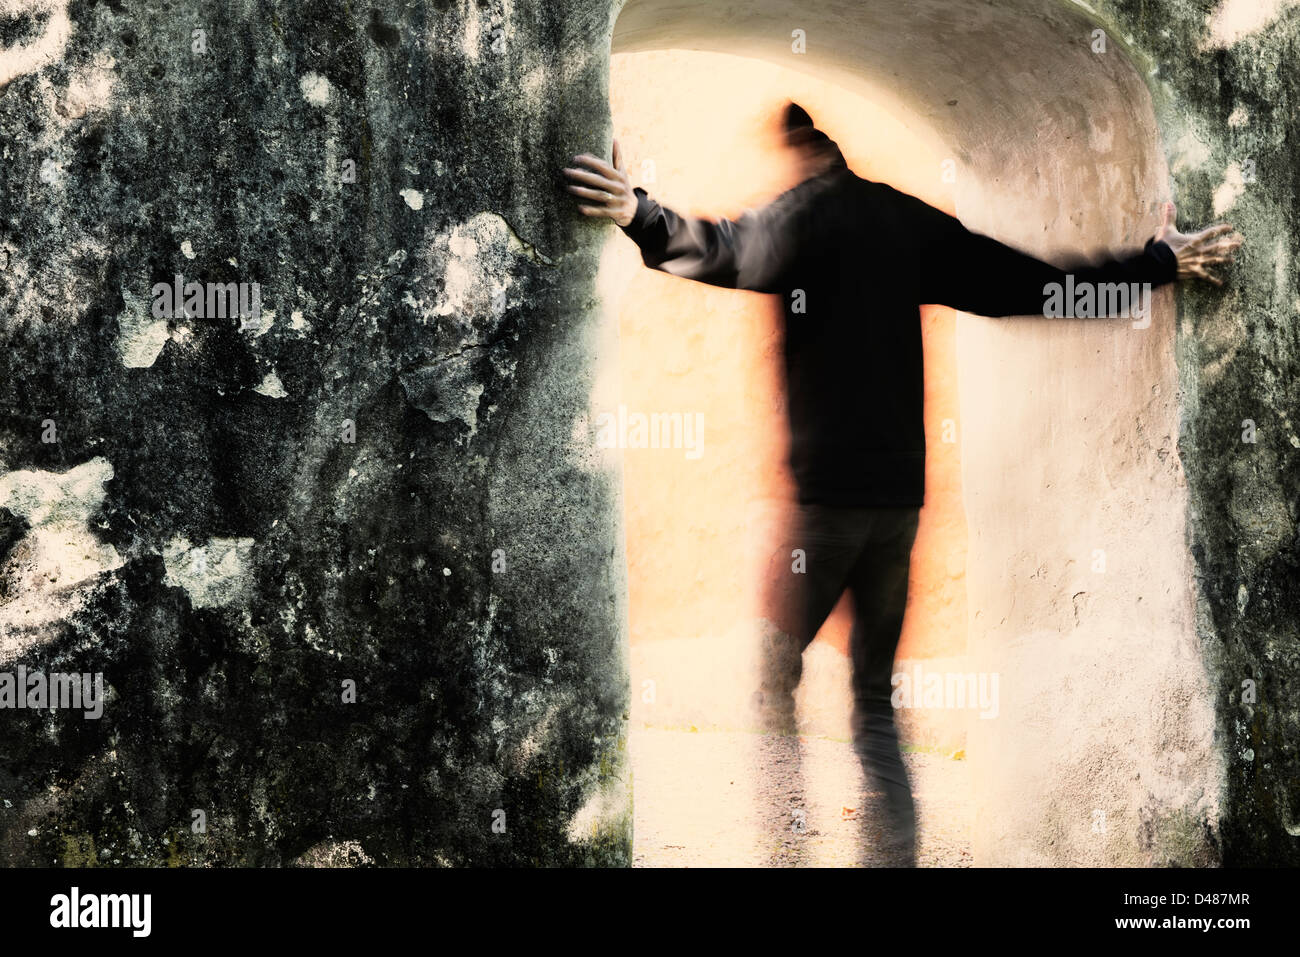 Adult male moving from darkness into light through portal. He is holding on to the stone wall. Stock Photo